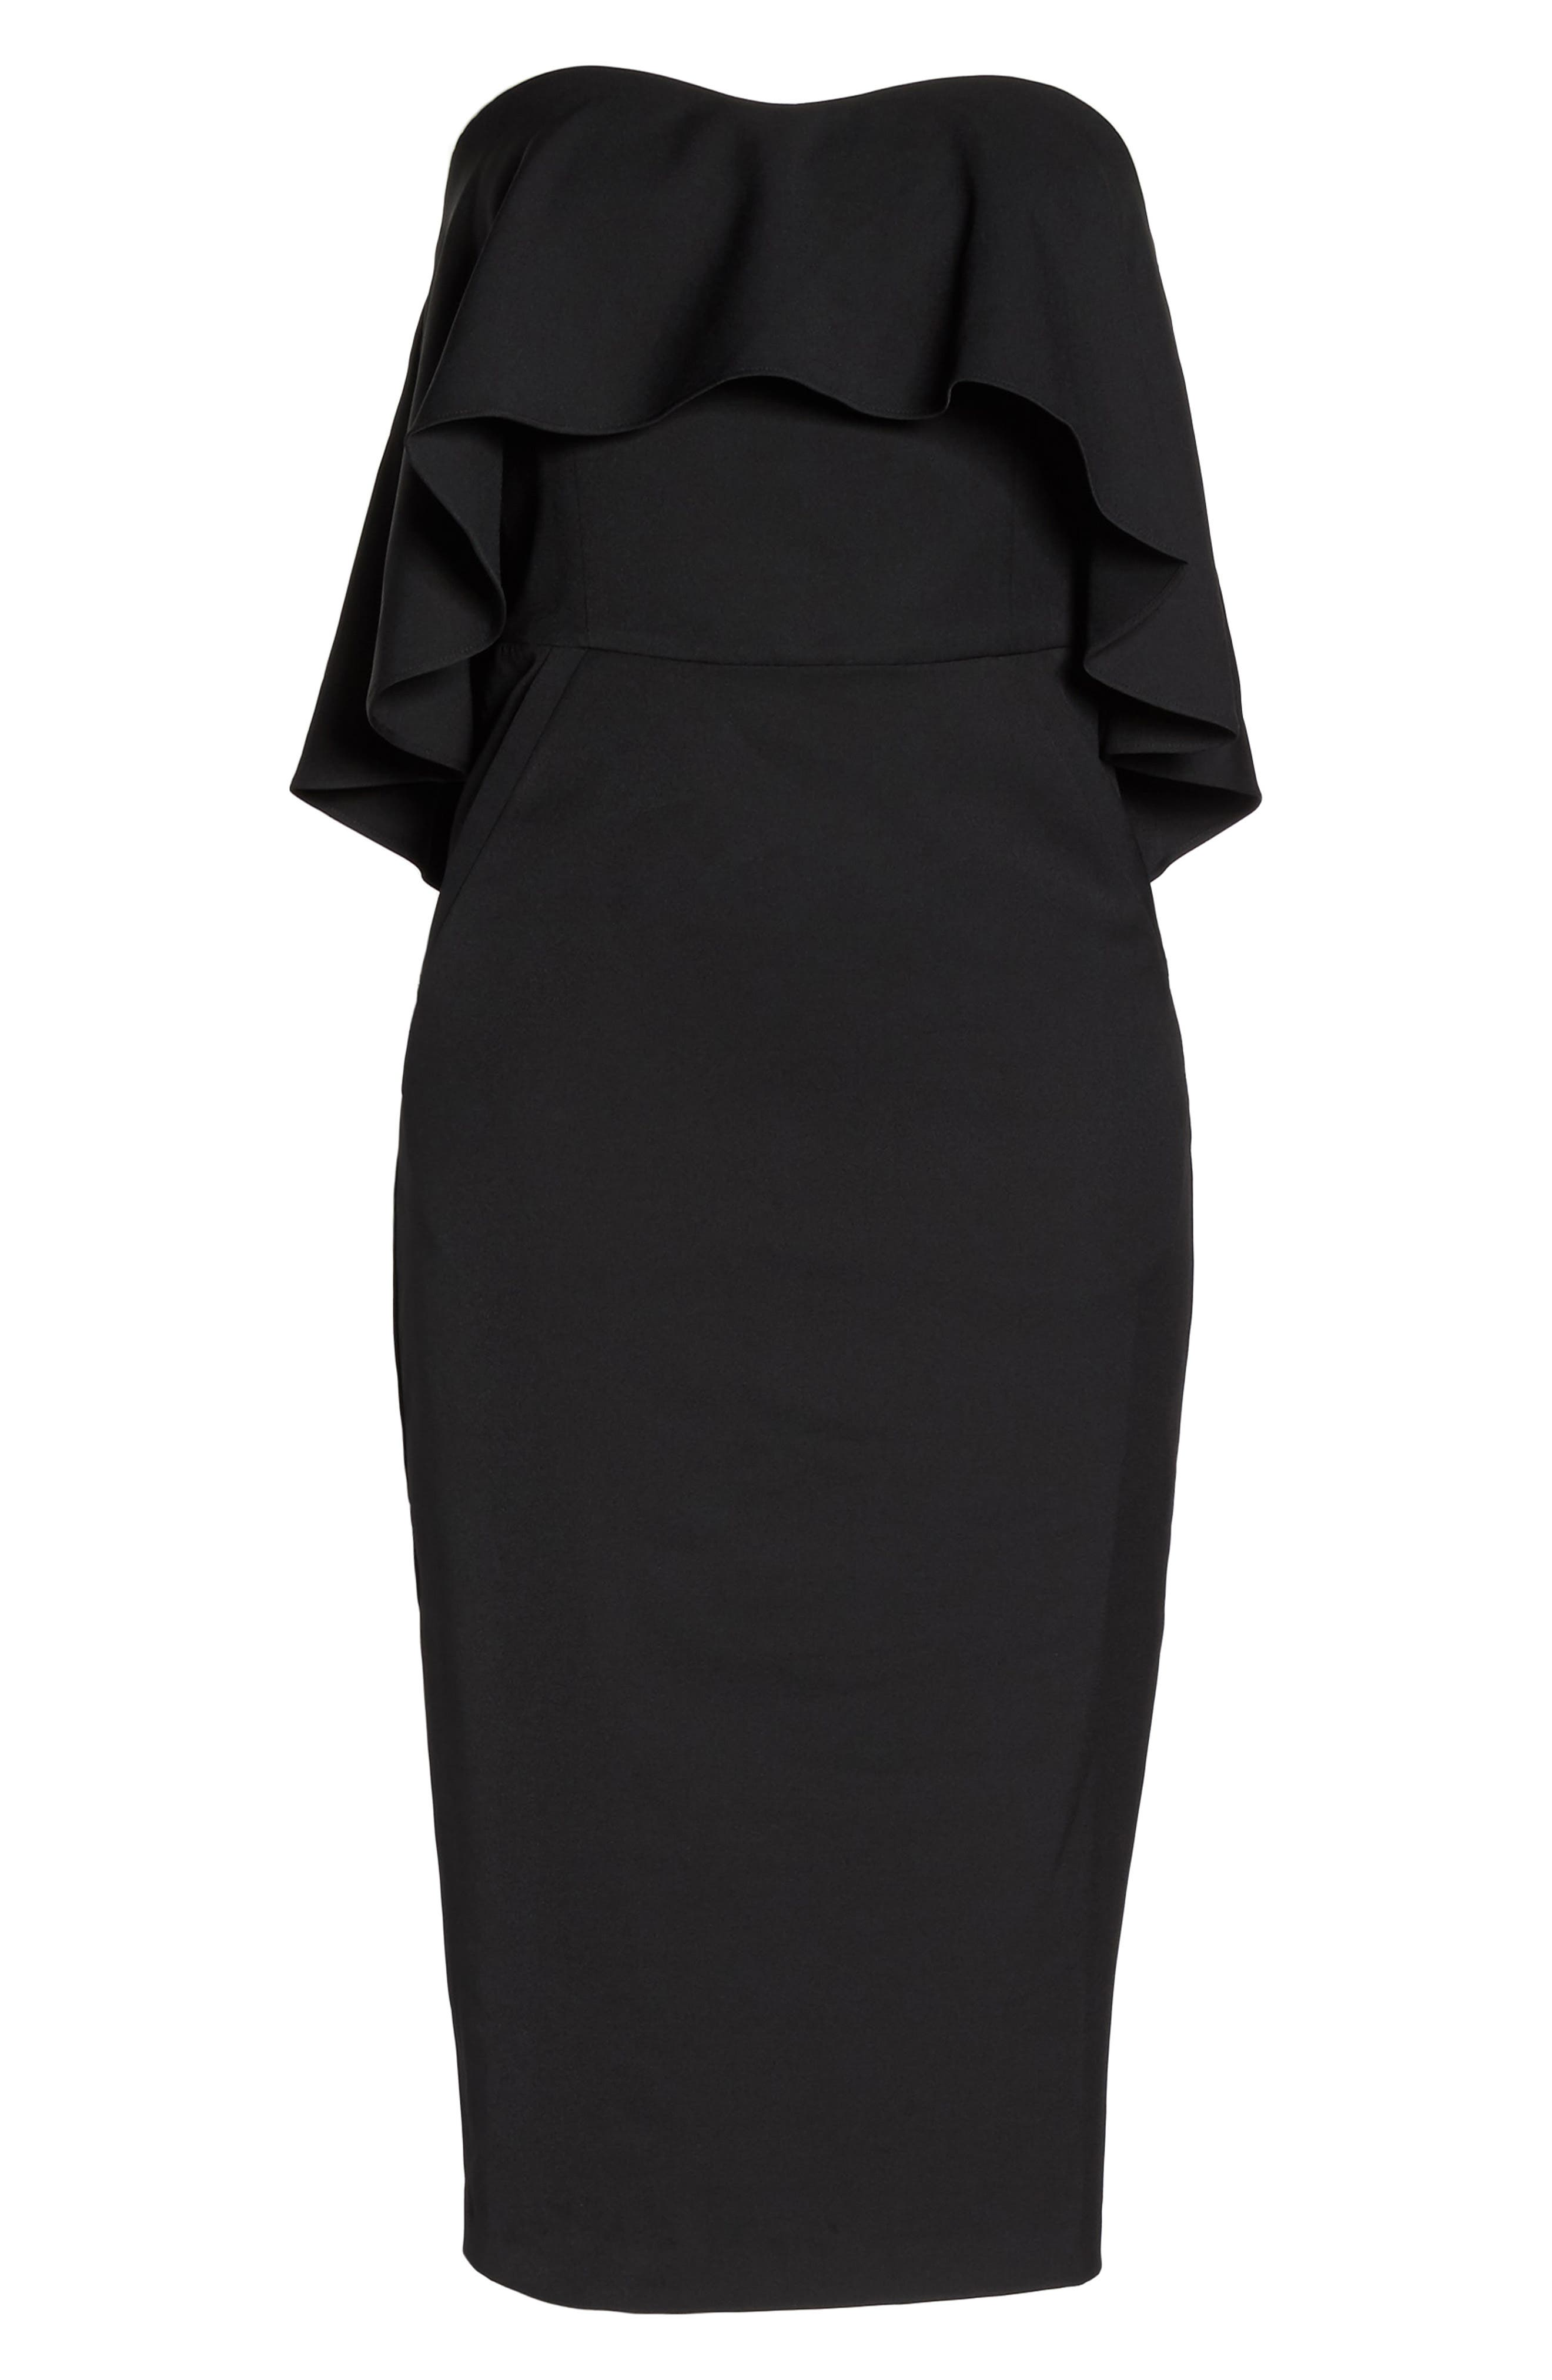 Ruffle Stretch Crepe Sheath Dress,                         Main,                         color, 001